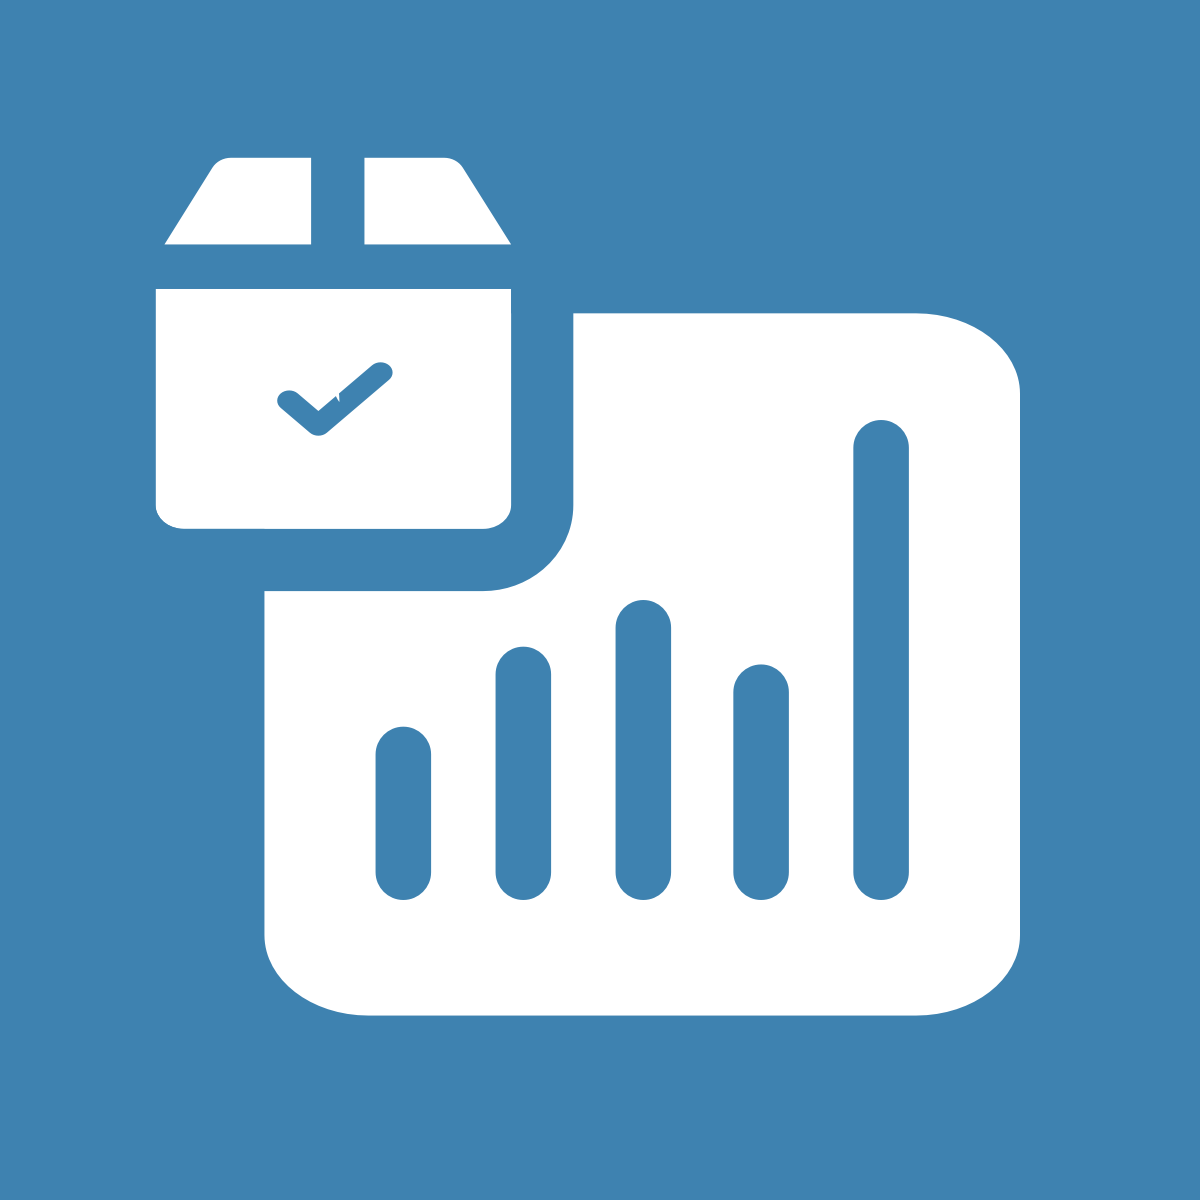 Hire Shopify Experts to integrate Report Guru app into a Shopify store